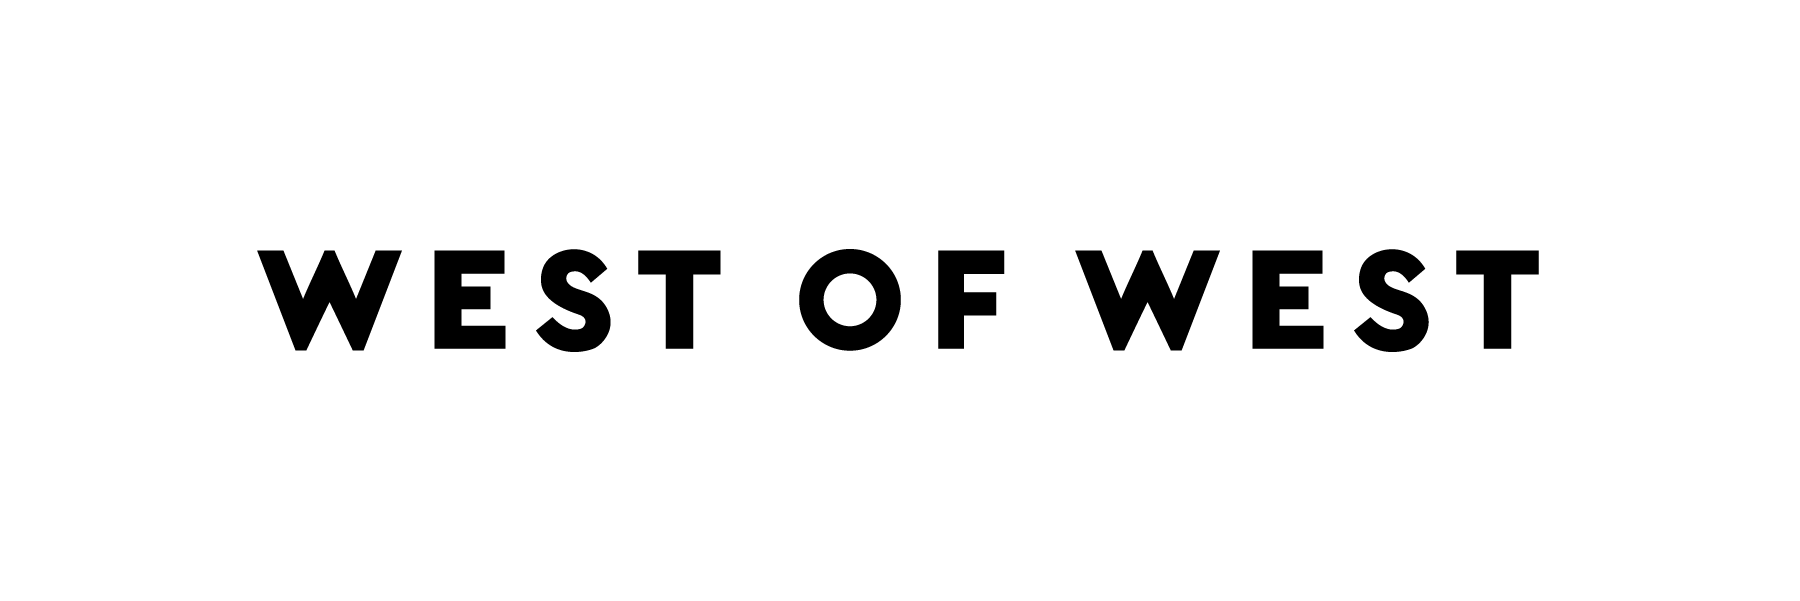 West of West-01.png